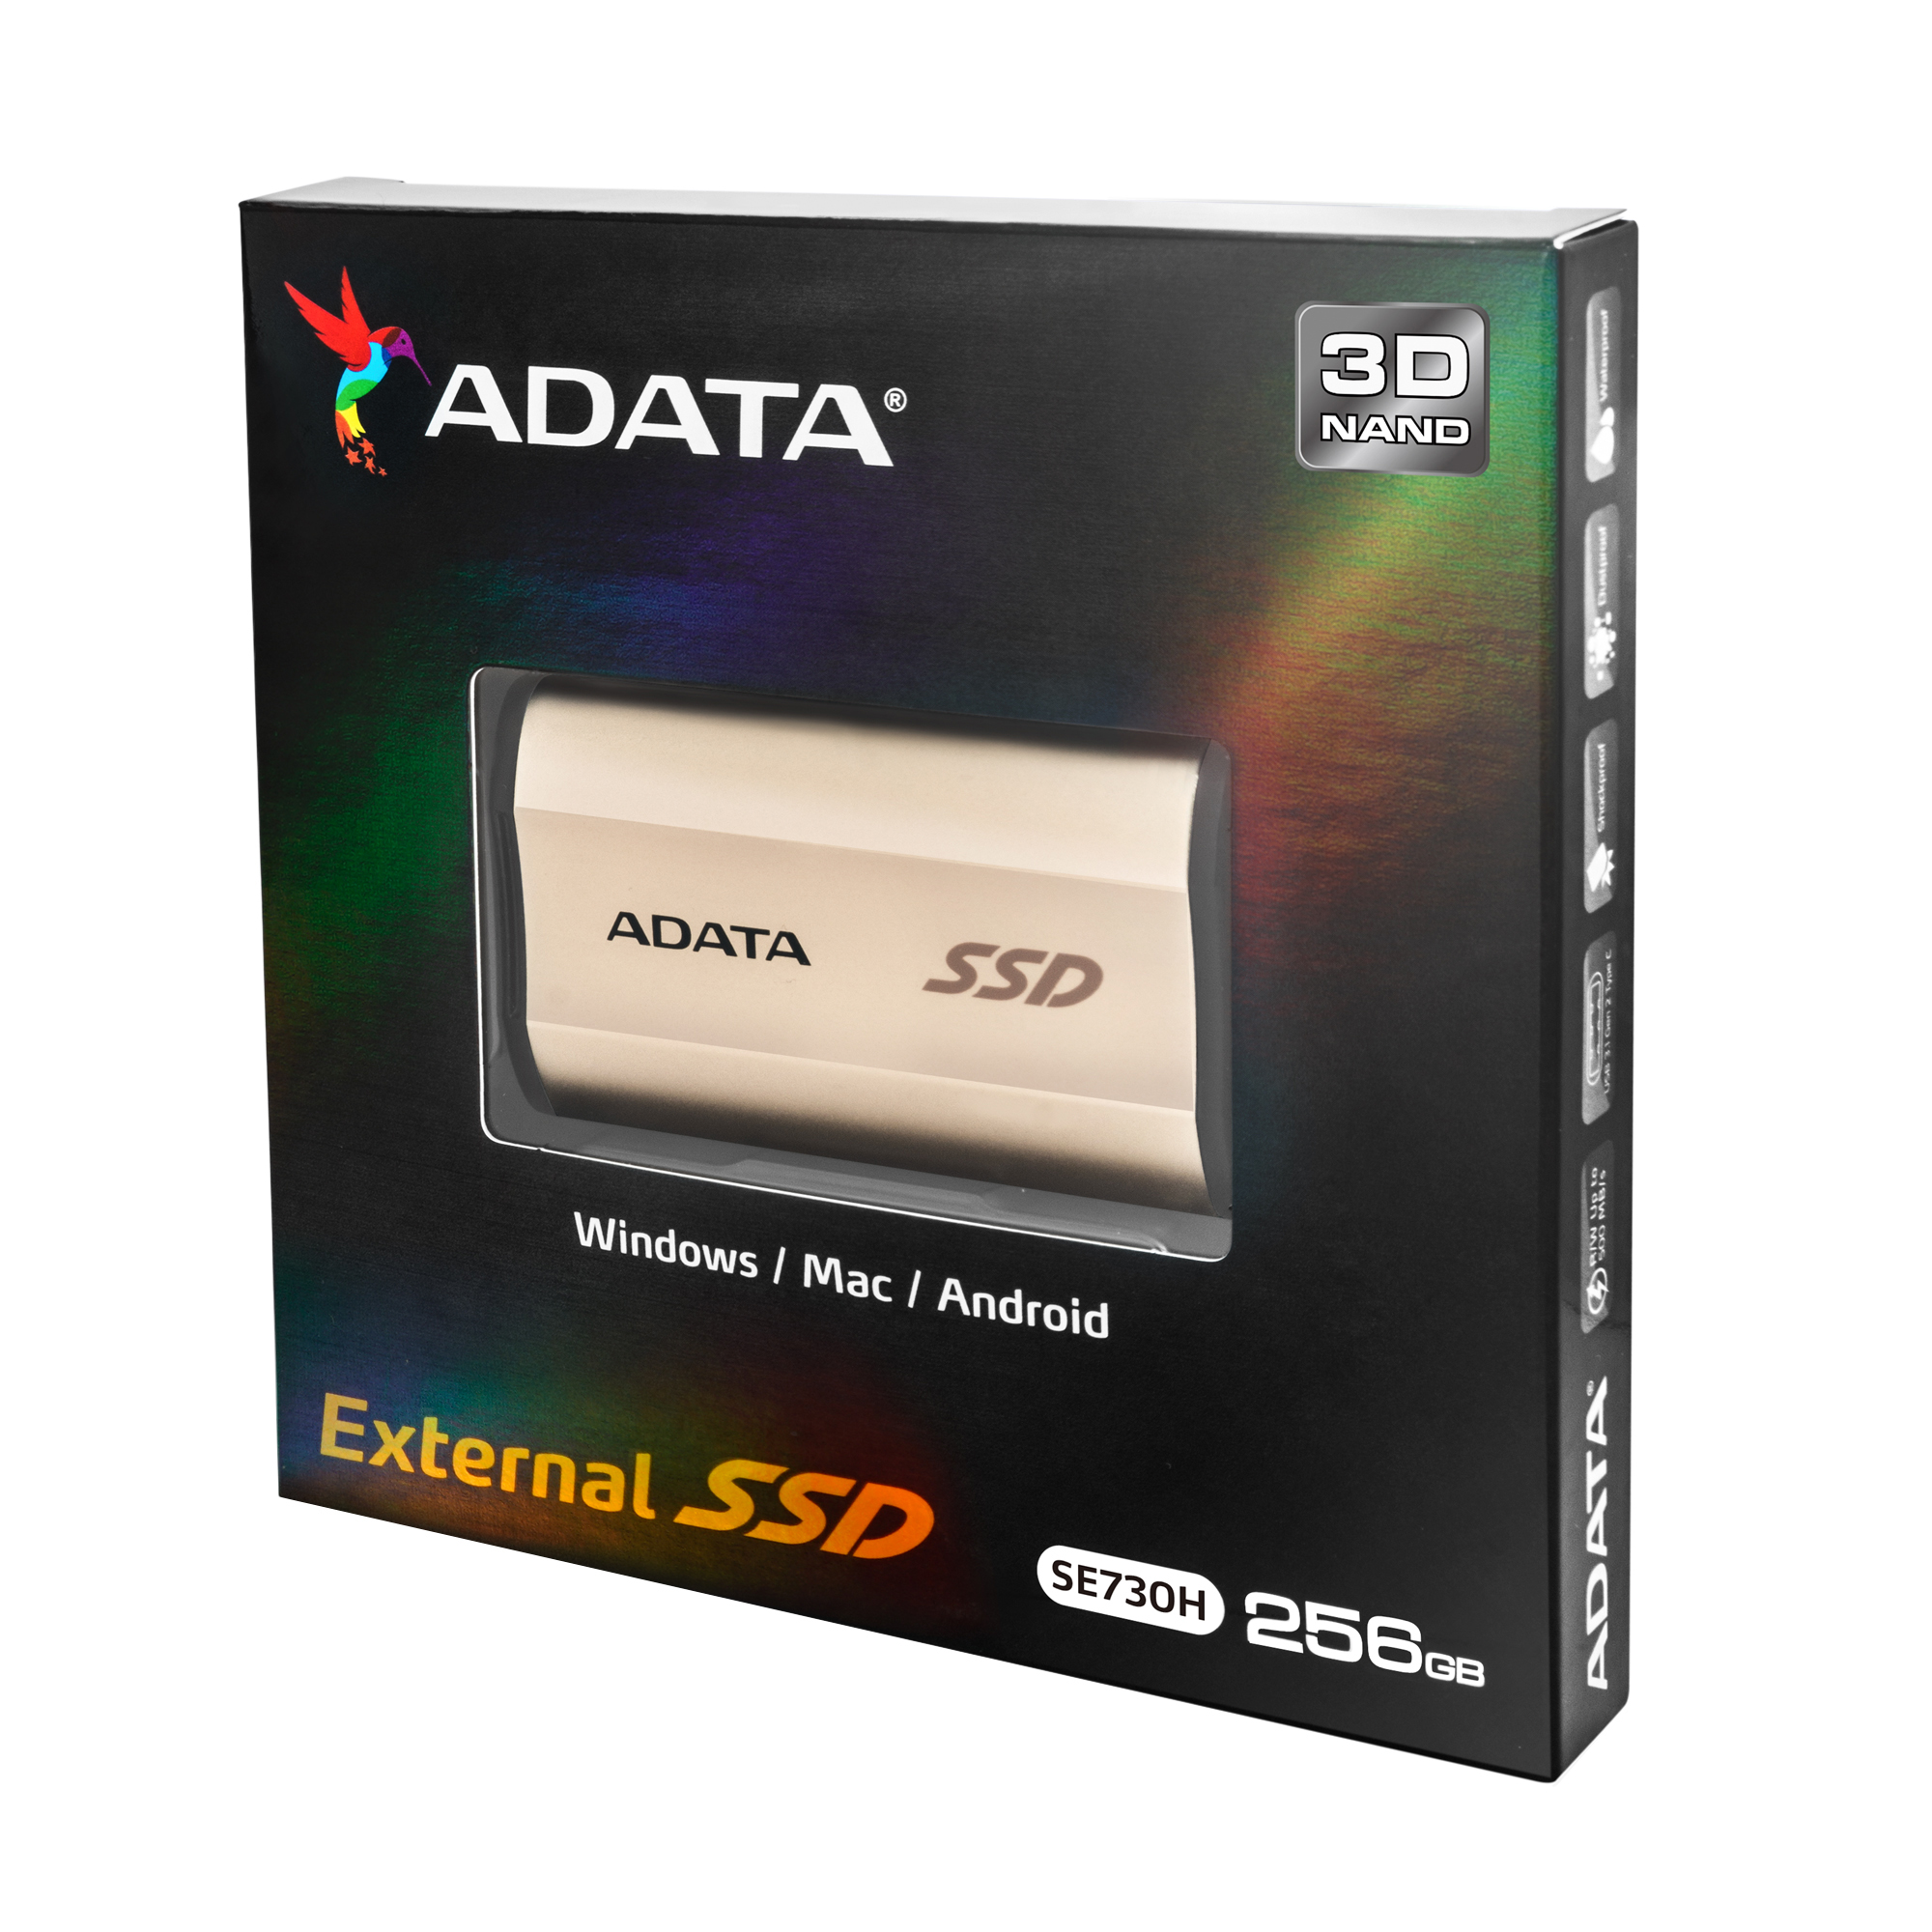 photo image ADATA announces SE730H 3D NAND USB-C External SSD for Windows, macOS, and Linux